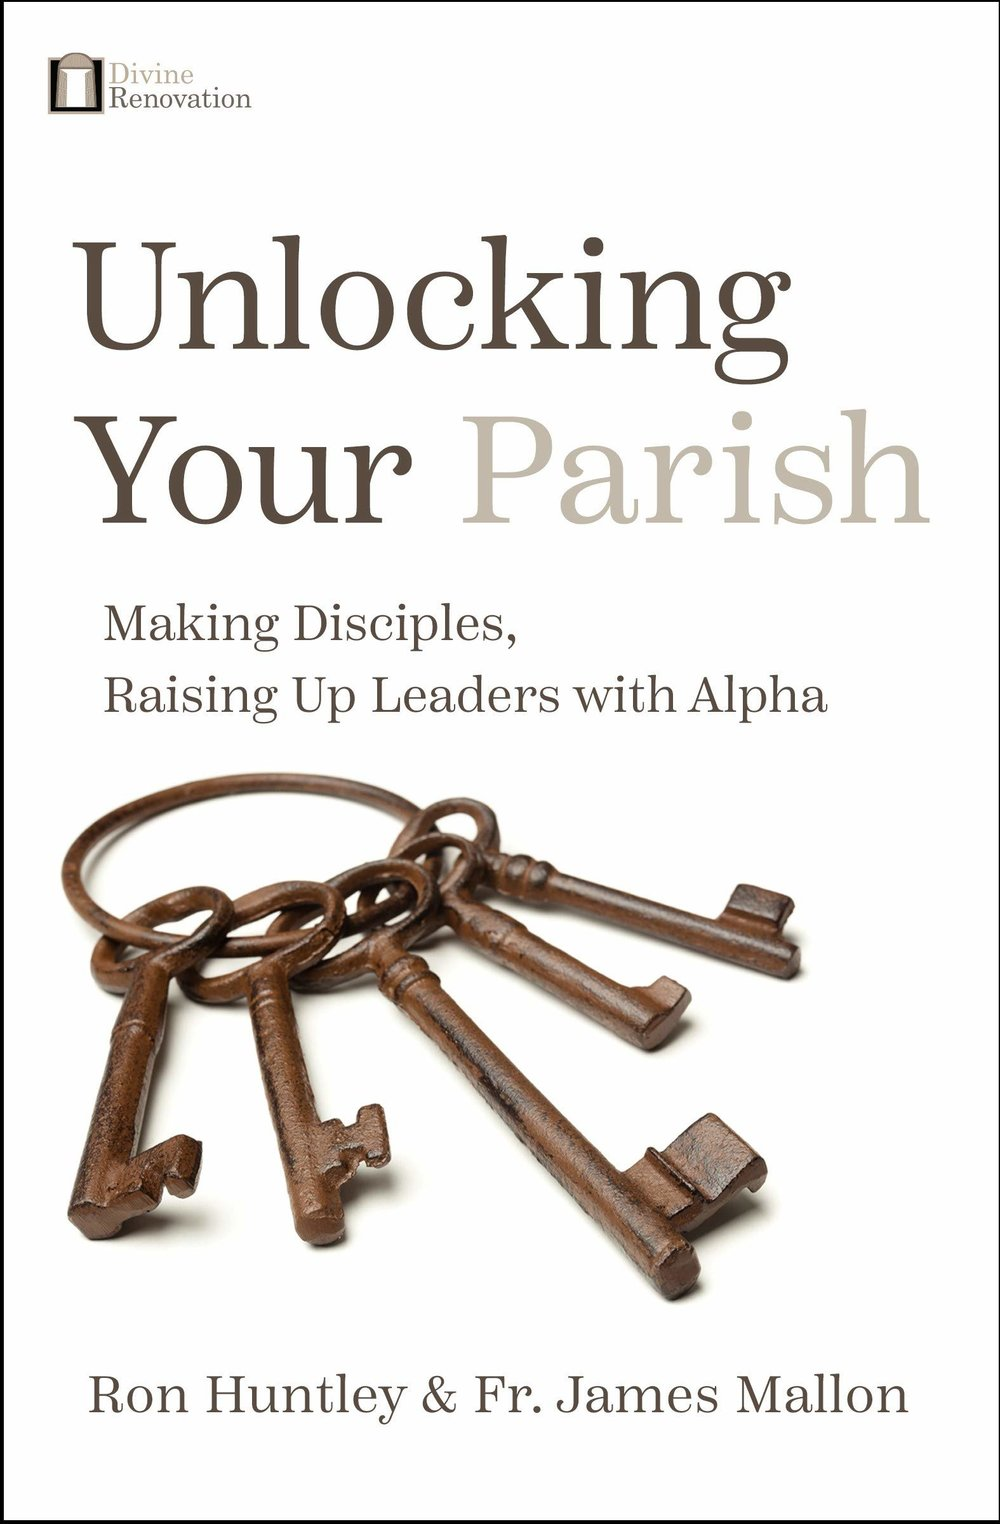 Unlocking Your Parish - Can Catholic parishes become communities of missionary disciples that bear lasting fruit? If so, what does it take to move them in that direction?Through his years as pastor of Saint Benedict Parish in Halifax, Canada, Fr. James Mallon discovered that the answer to the first question was a resounding yes! Tailored for Catholics, Alpha played a key role in the transformation of the parish he pastored.Unlocking Your Parish: Making Disciples, Raising Up Leaders with Alpha aims to provide insight into what Alpha can do to help any Catholic parish become a vibrant, mission-focused community.